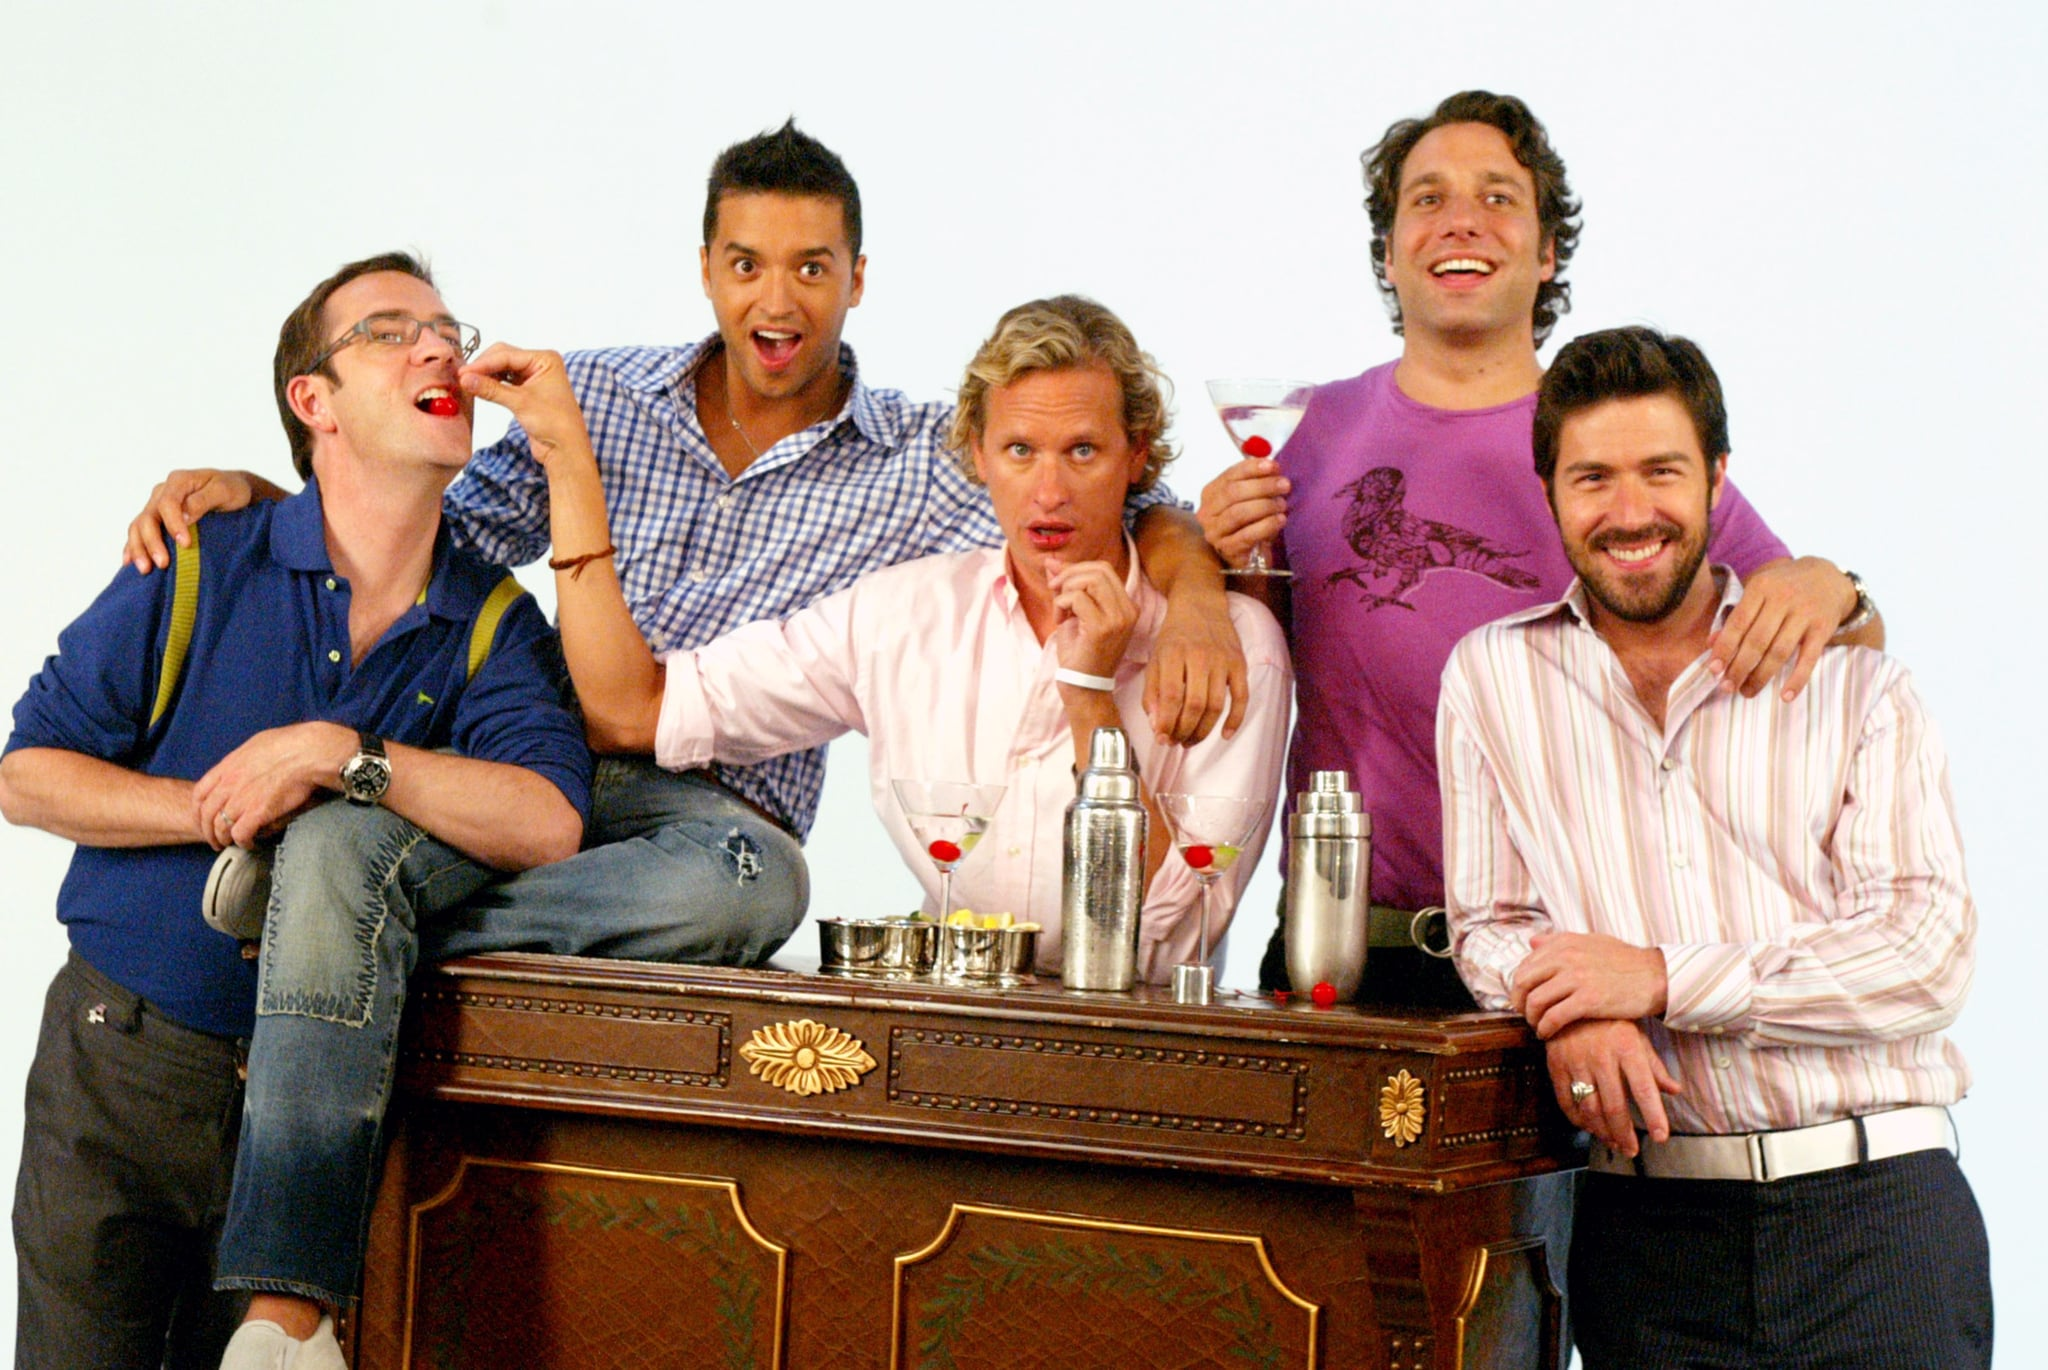 QUEER EYE FOR THE STRAIGHT GUY, Ted Allen, Jai Rodriguez, Carson Kressley, Thom Filicia, Kyan Douglas, 'Moose Lodge', (Season 4), 2003-07. photo: Matthew Peyton /  Bravo / Courtesy: Everett Collection